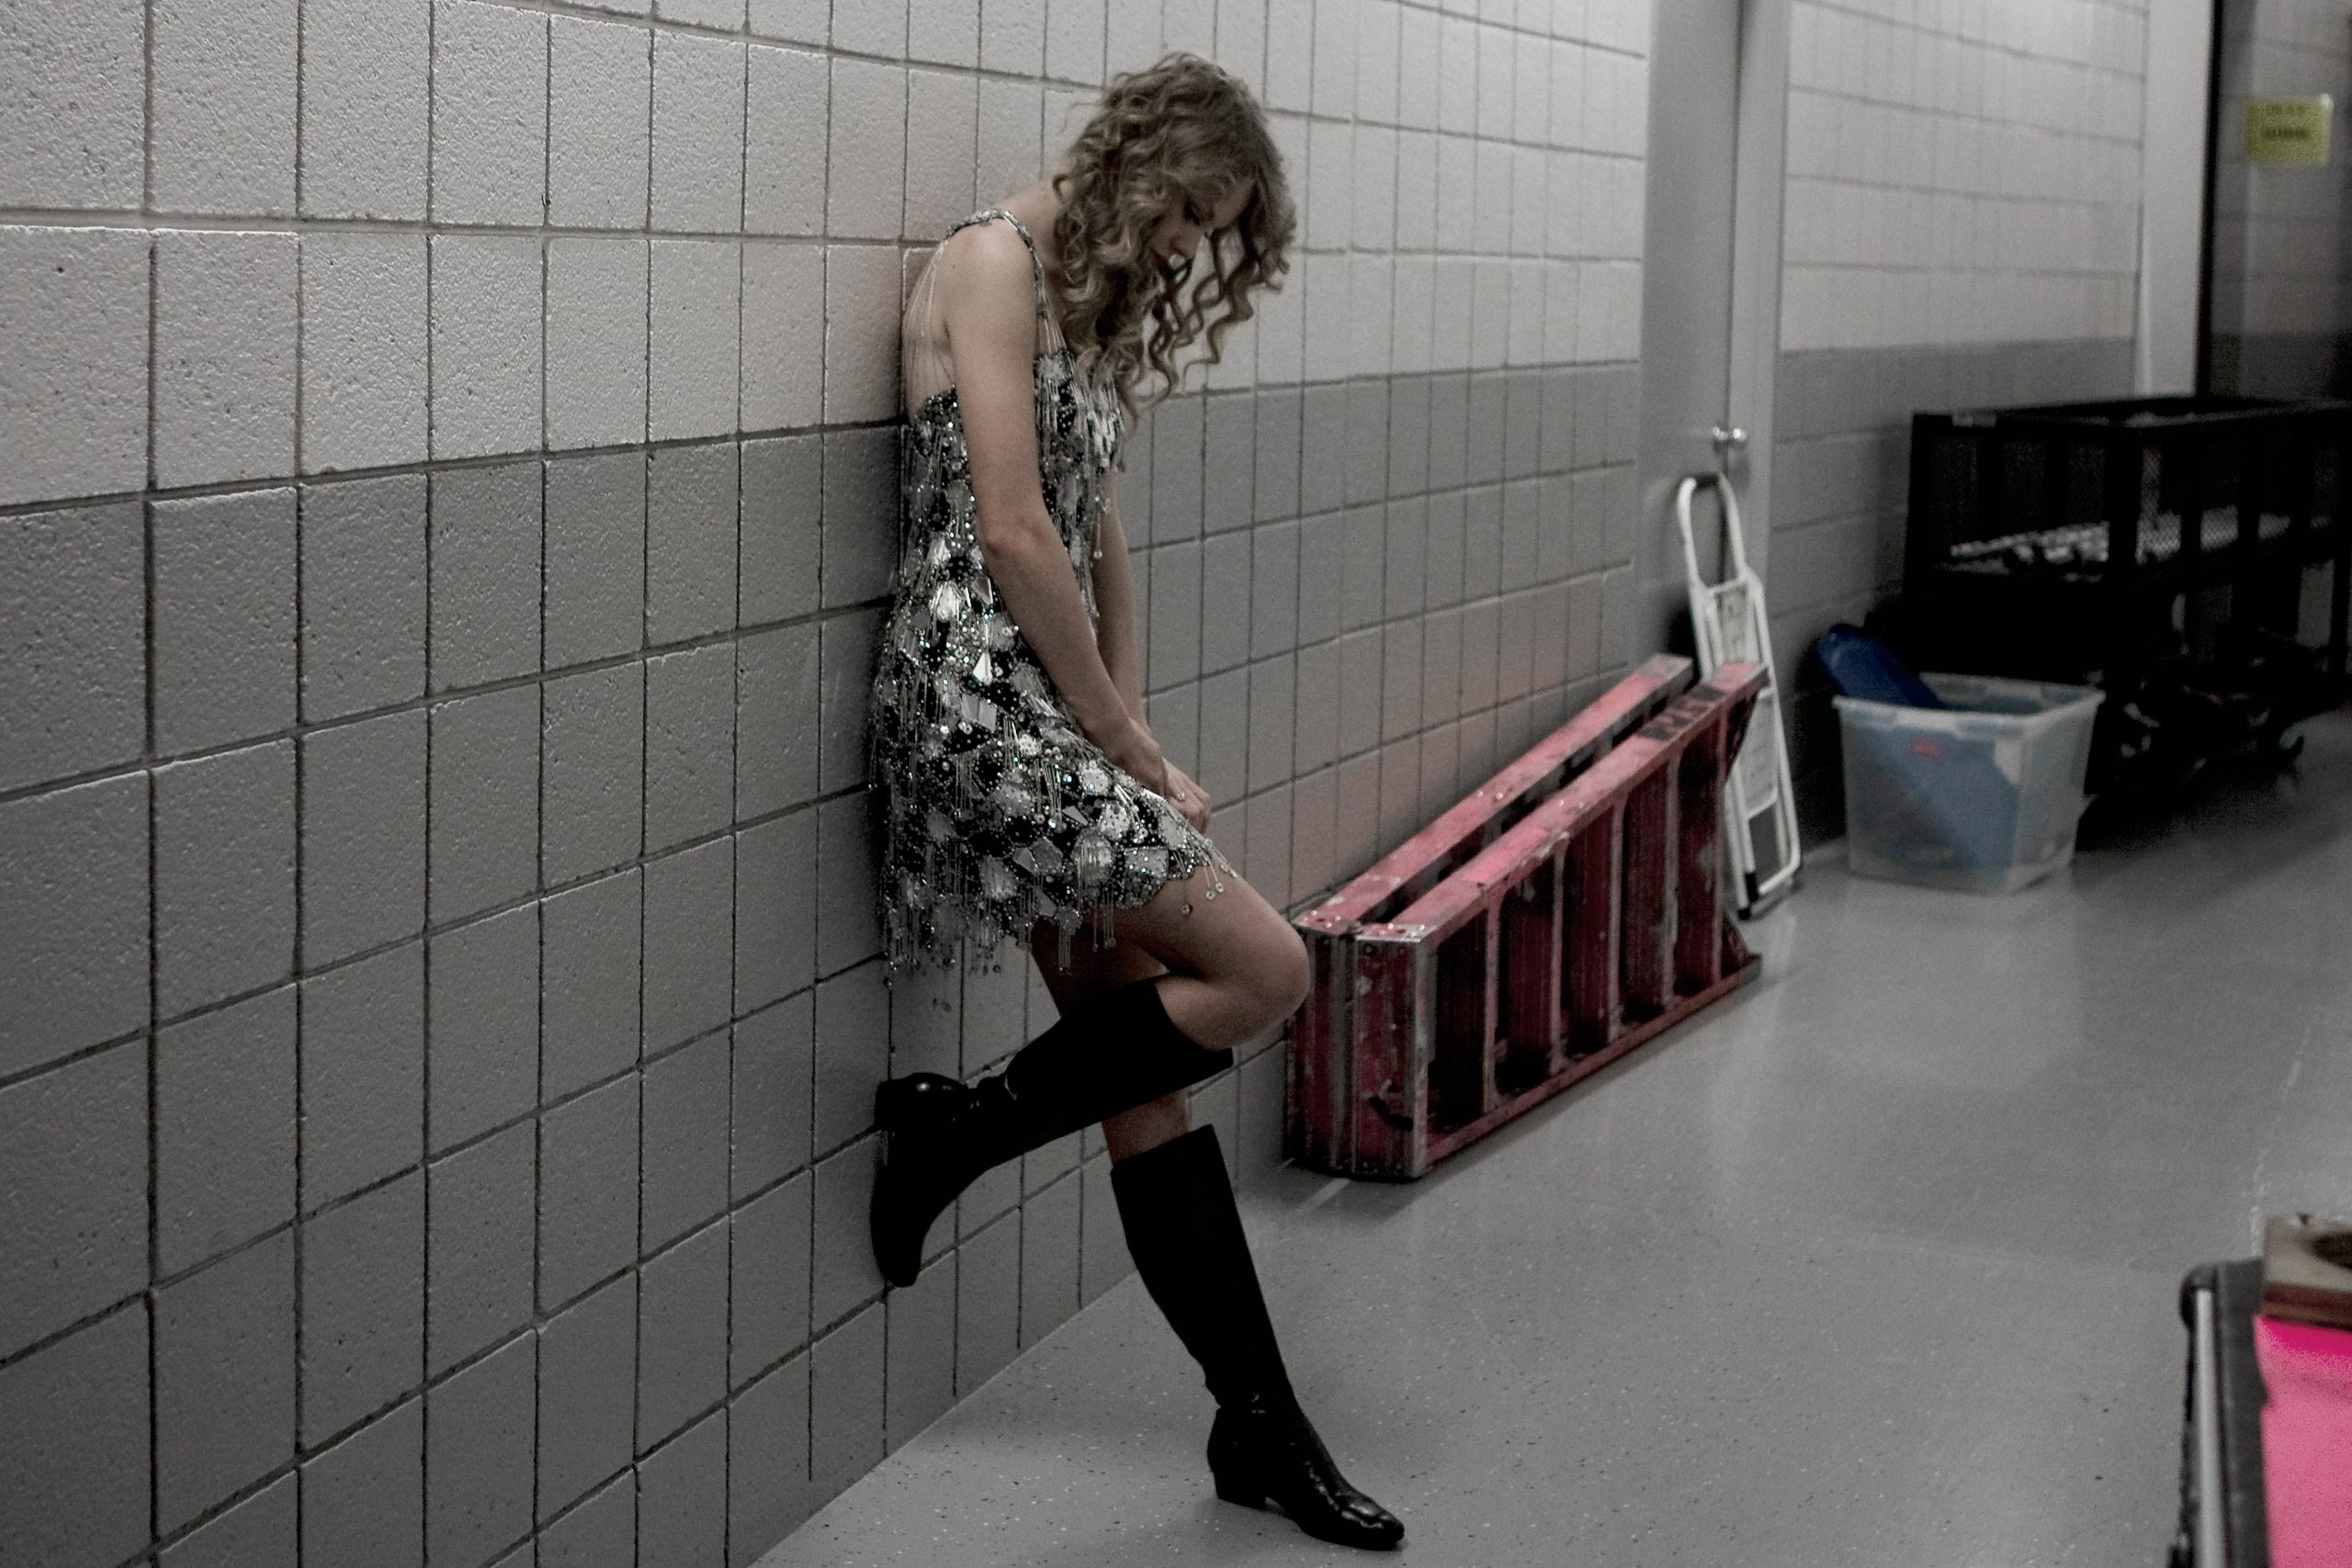 Taylor SwiftTaylor Swift backstage during her Fearless tour in Auburn Hills outside Detroit MI